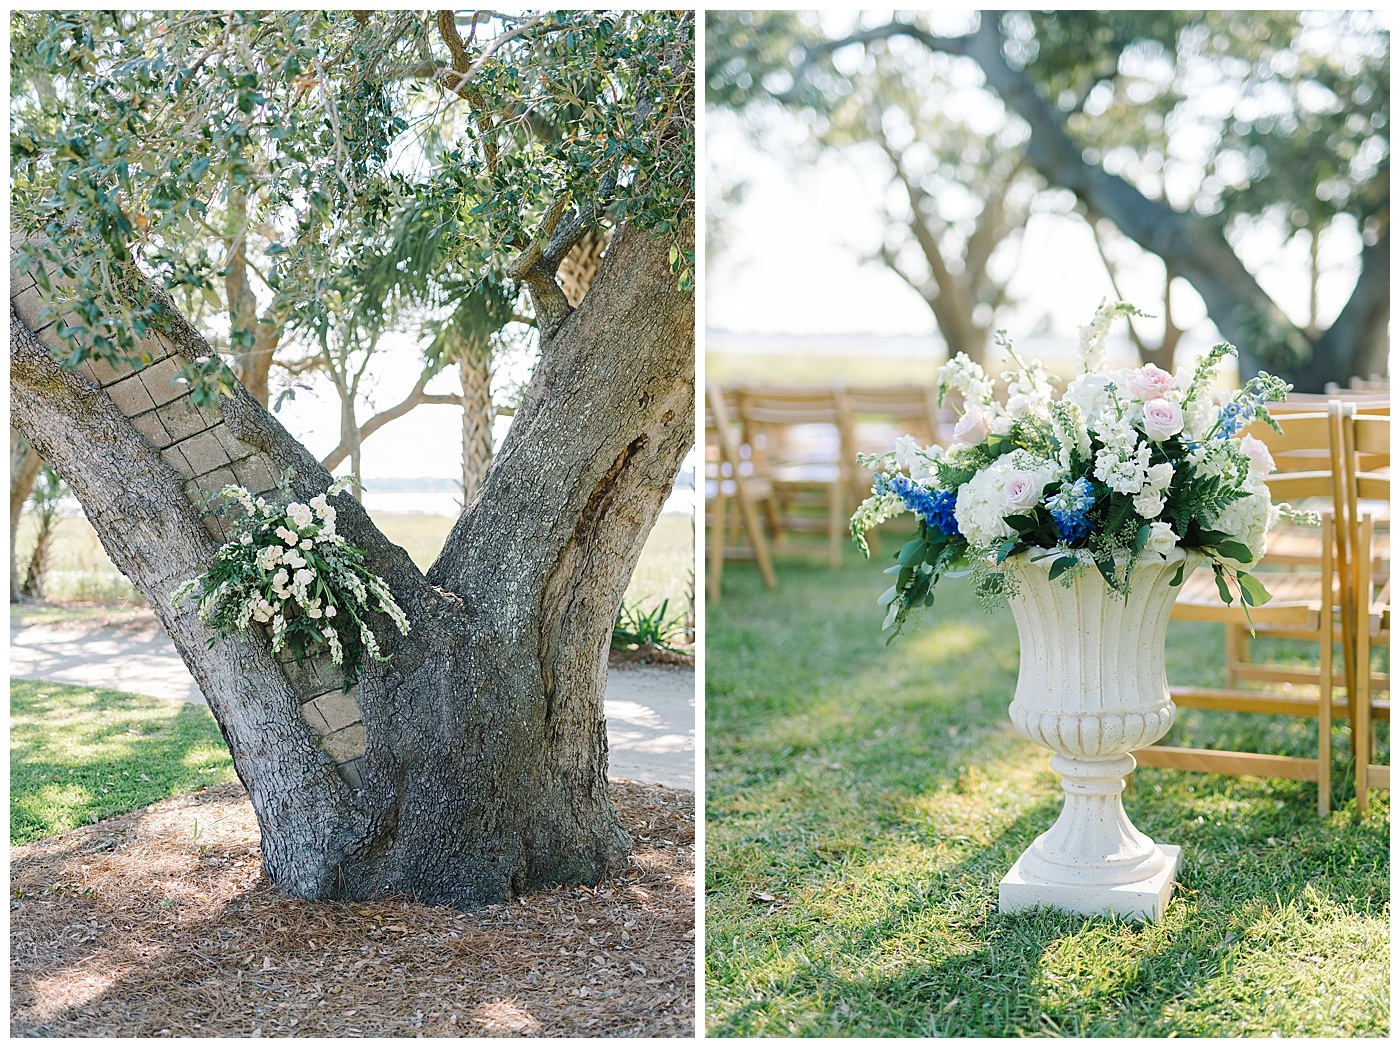 lowndes grove wedding details